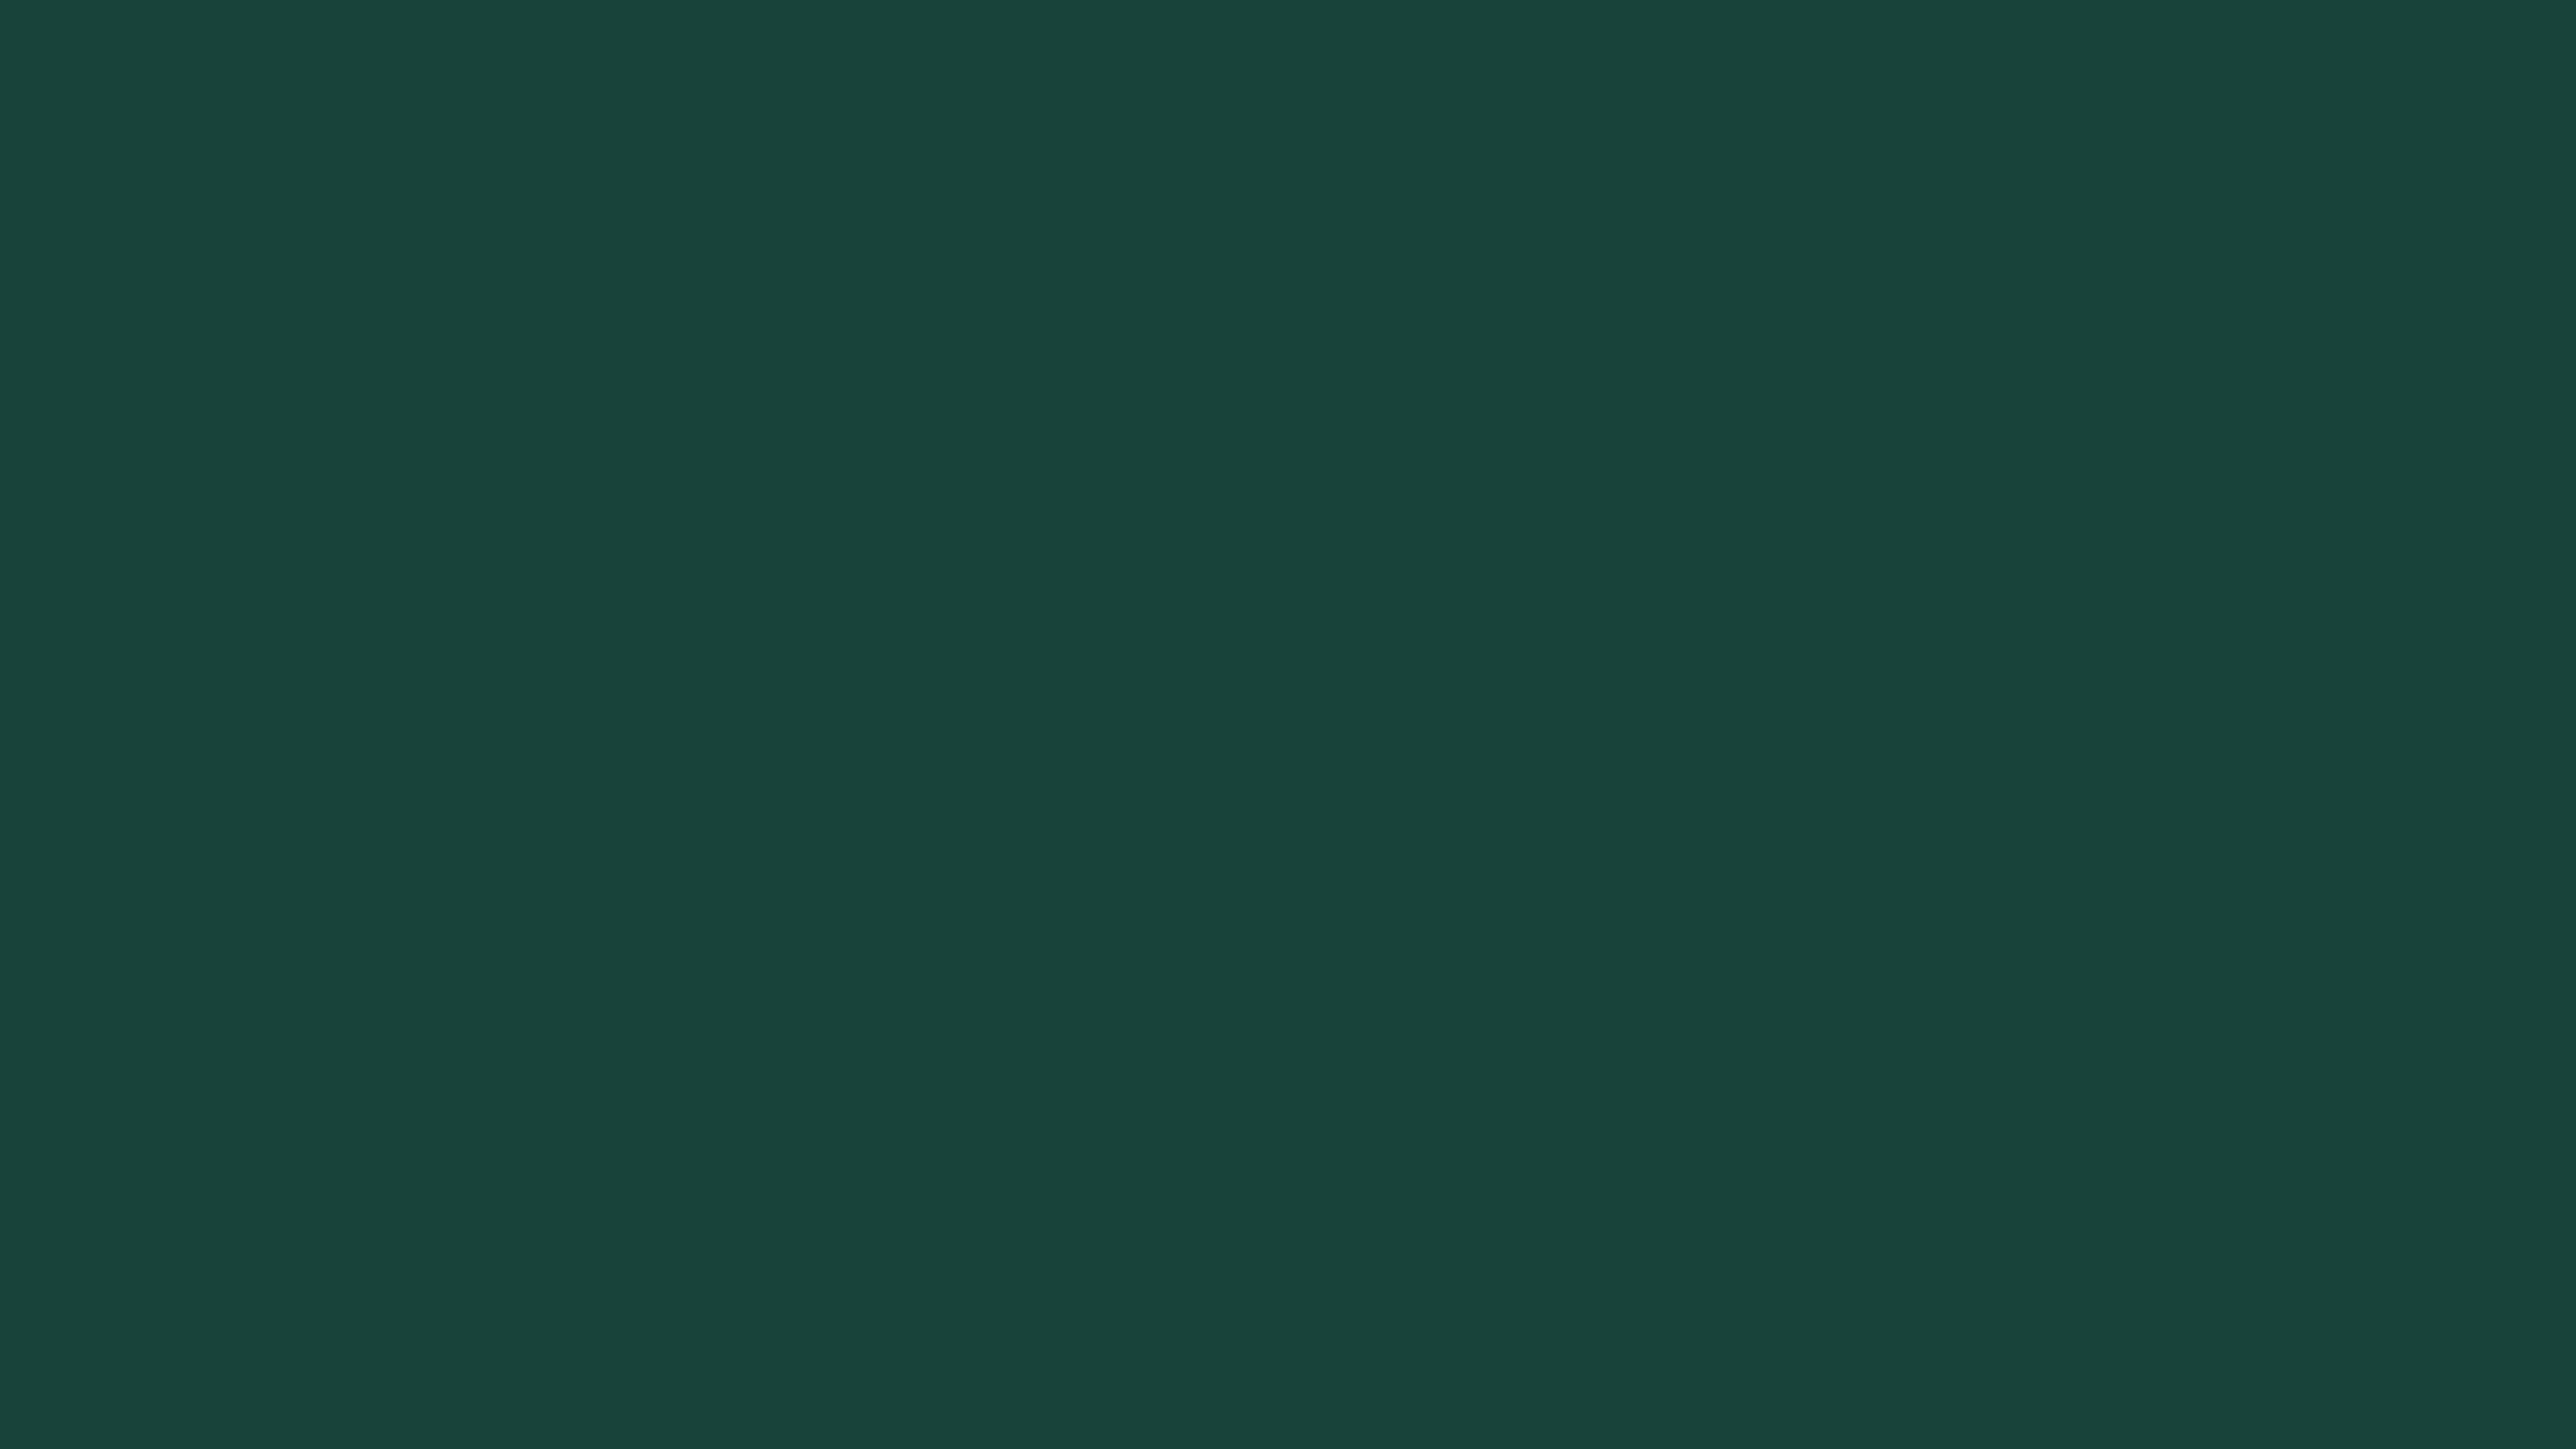 3840x2160 MSU Green Solid Color Background